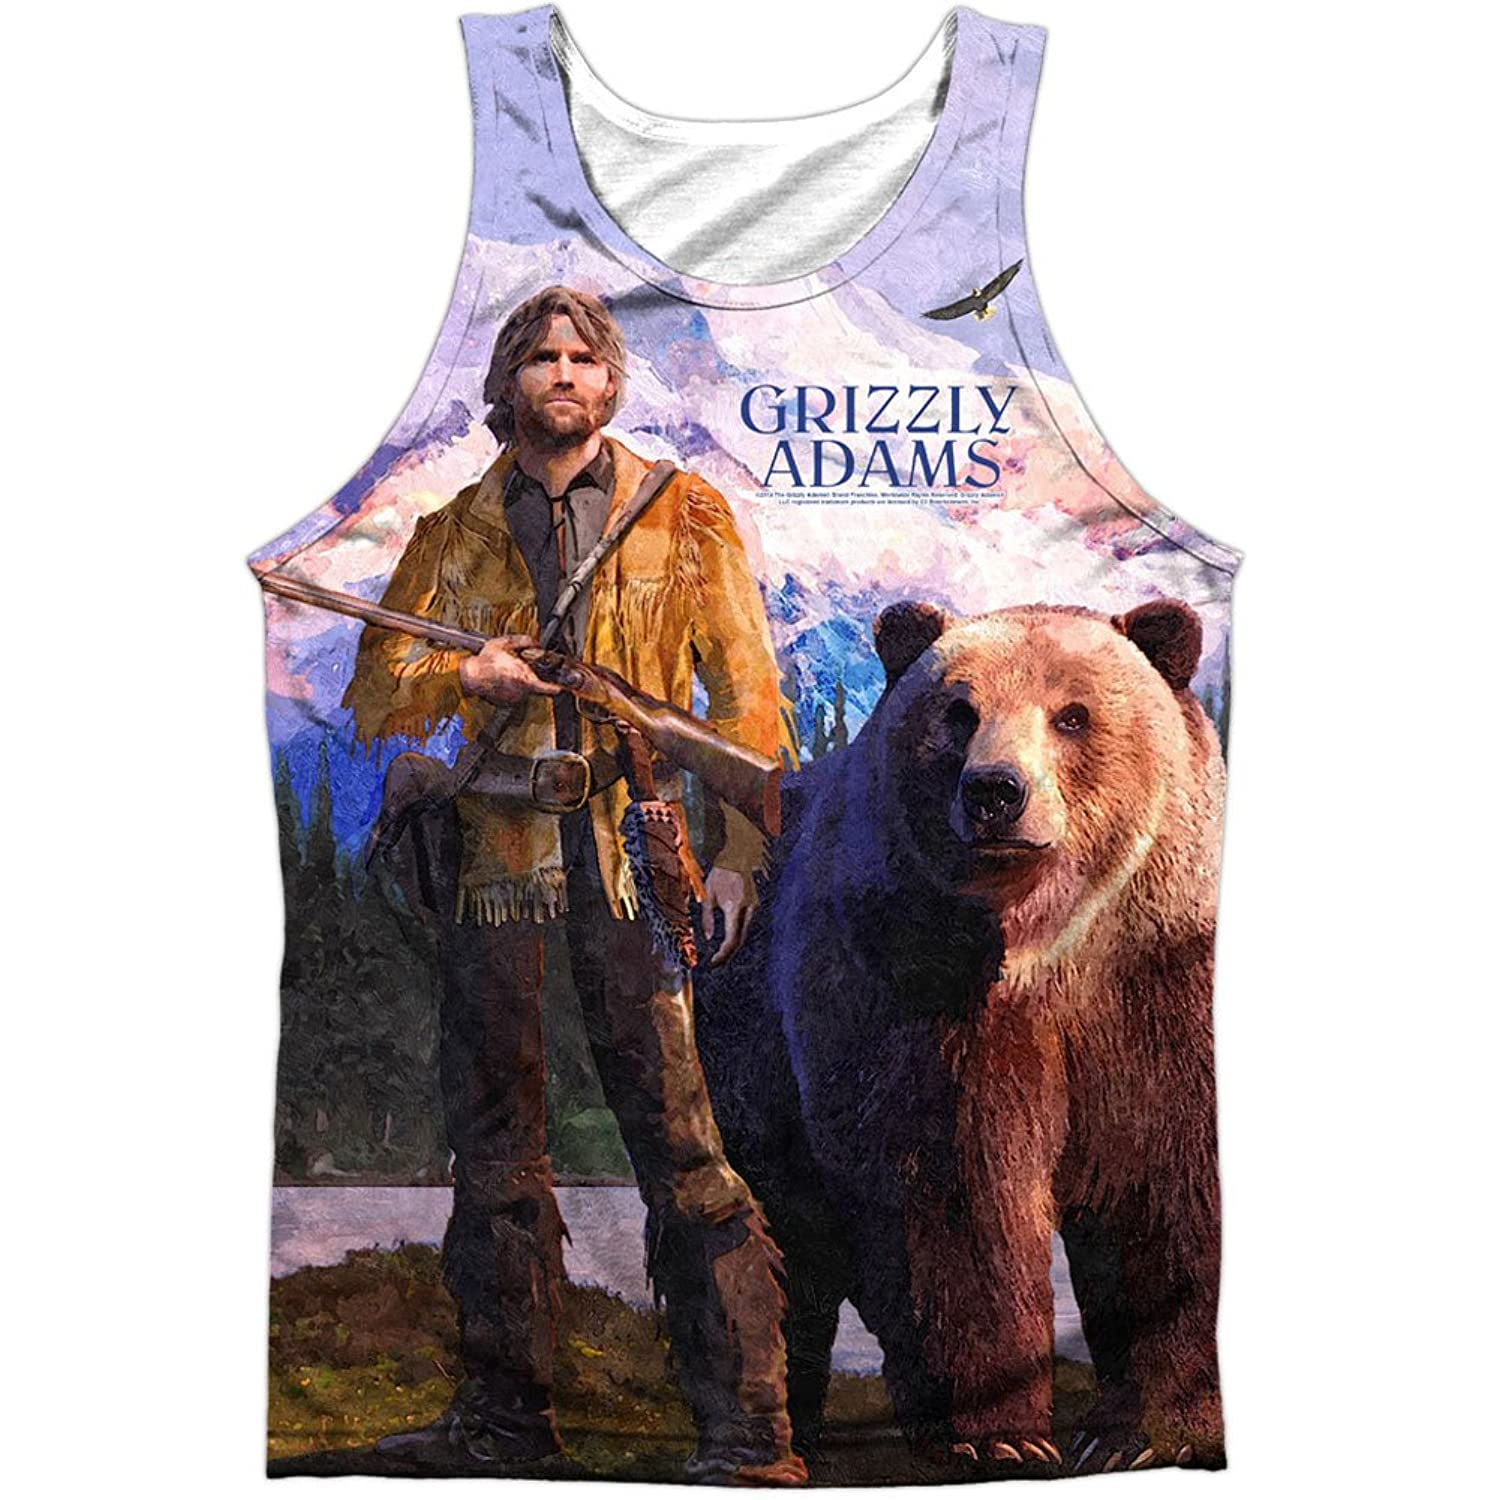 Grizzly Adams 1970's TV Series Bear & Fugitive Poster Front Print Tank Top Shirt